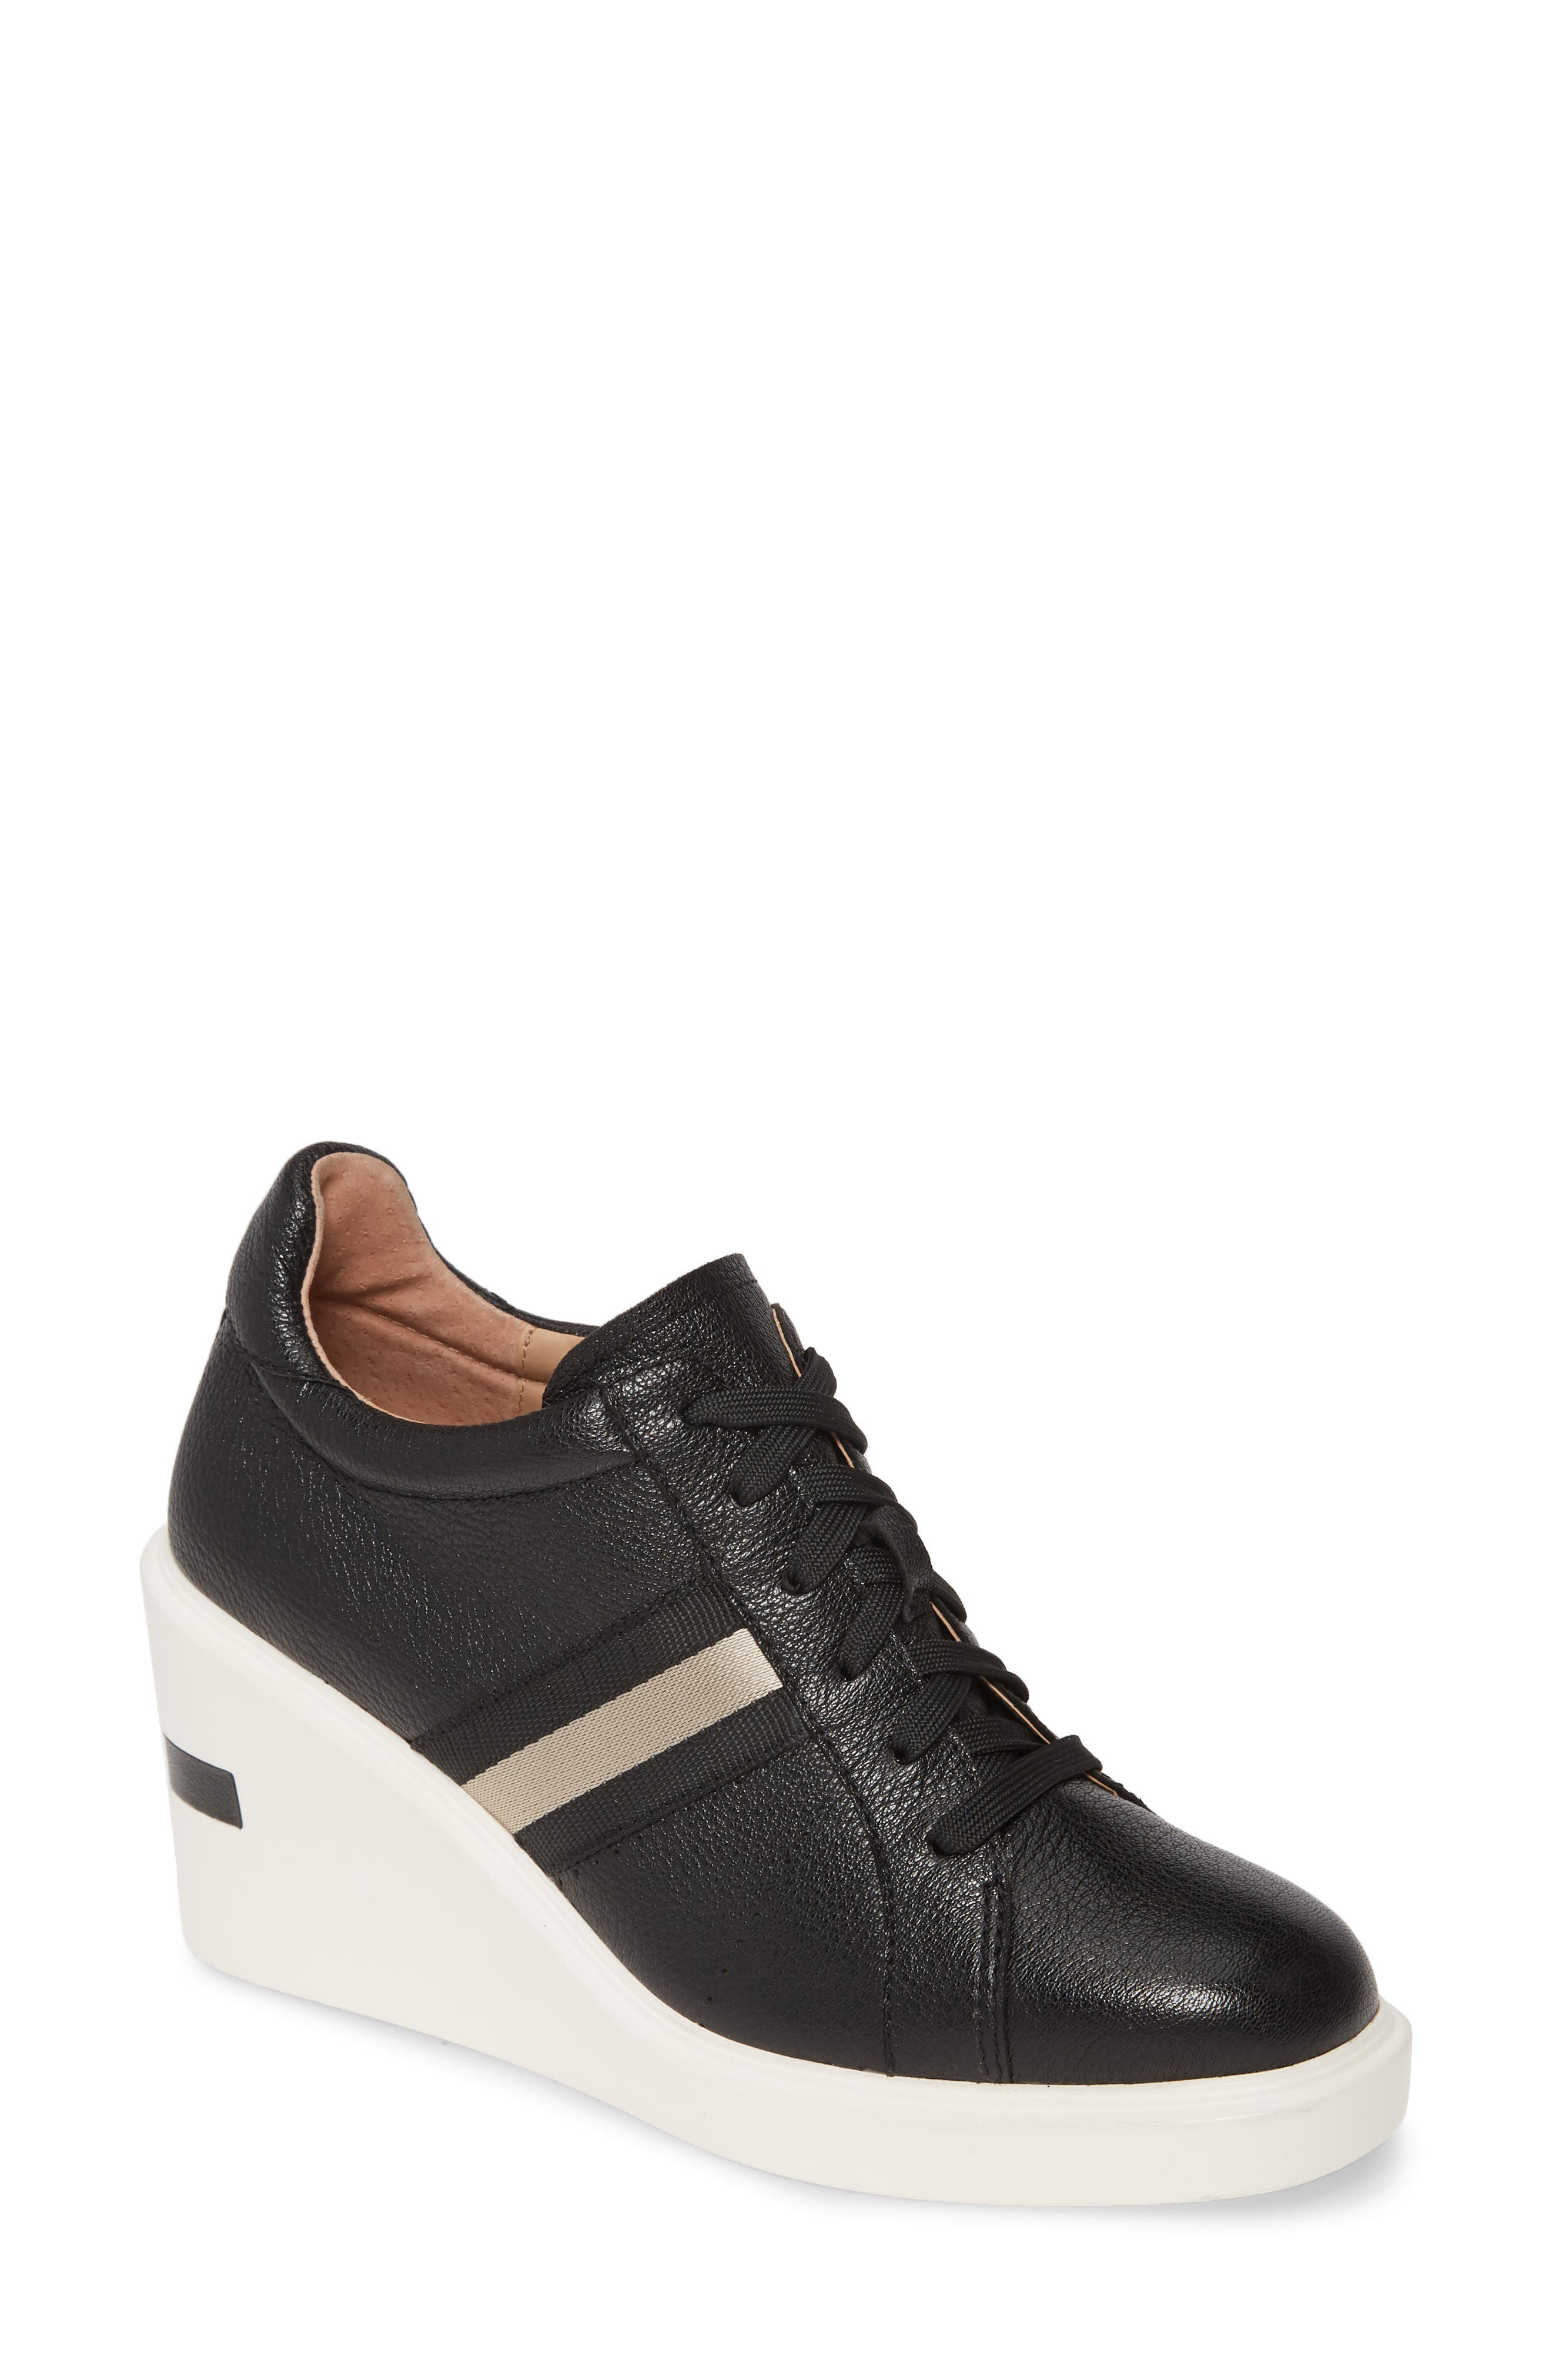 Linea Paolo Kandis Wedge Sneaker, Black